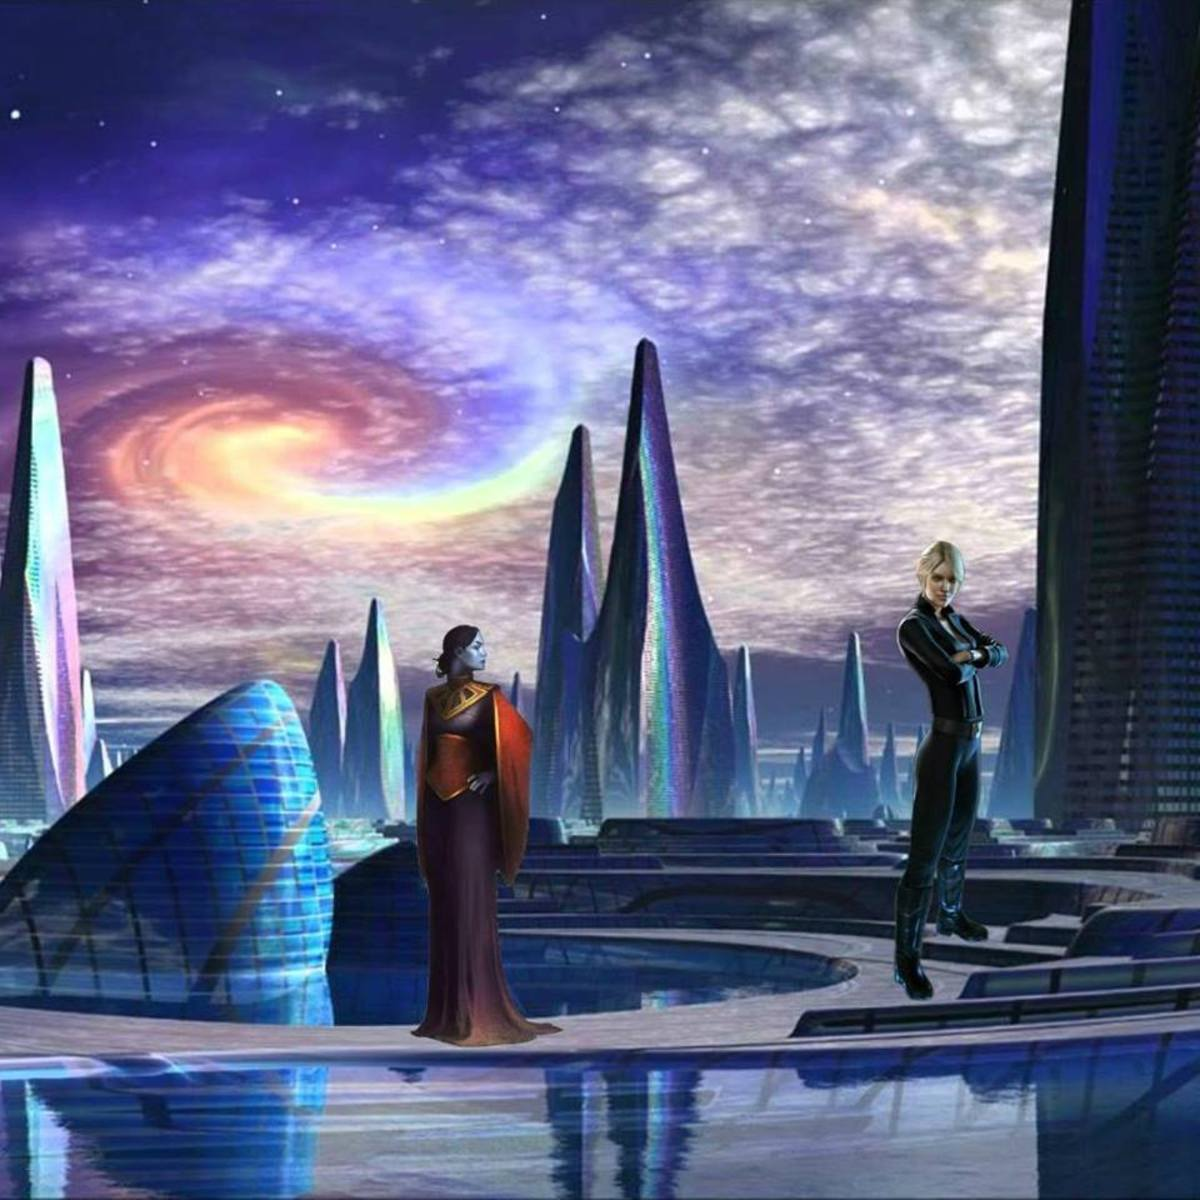 This illustration depicts an experience Elena had with one of the leaders of the El Race, descendants of the ancient Builder Race, named Anaya, in the future on Earth.